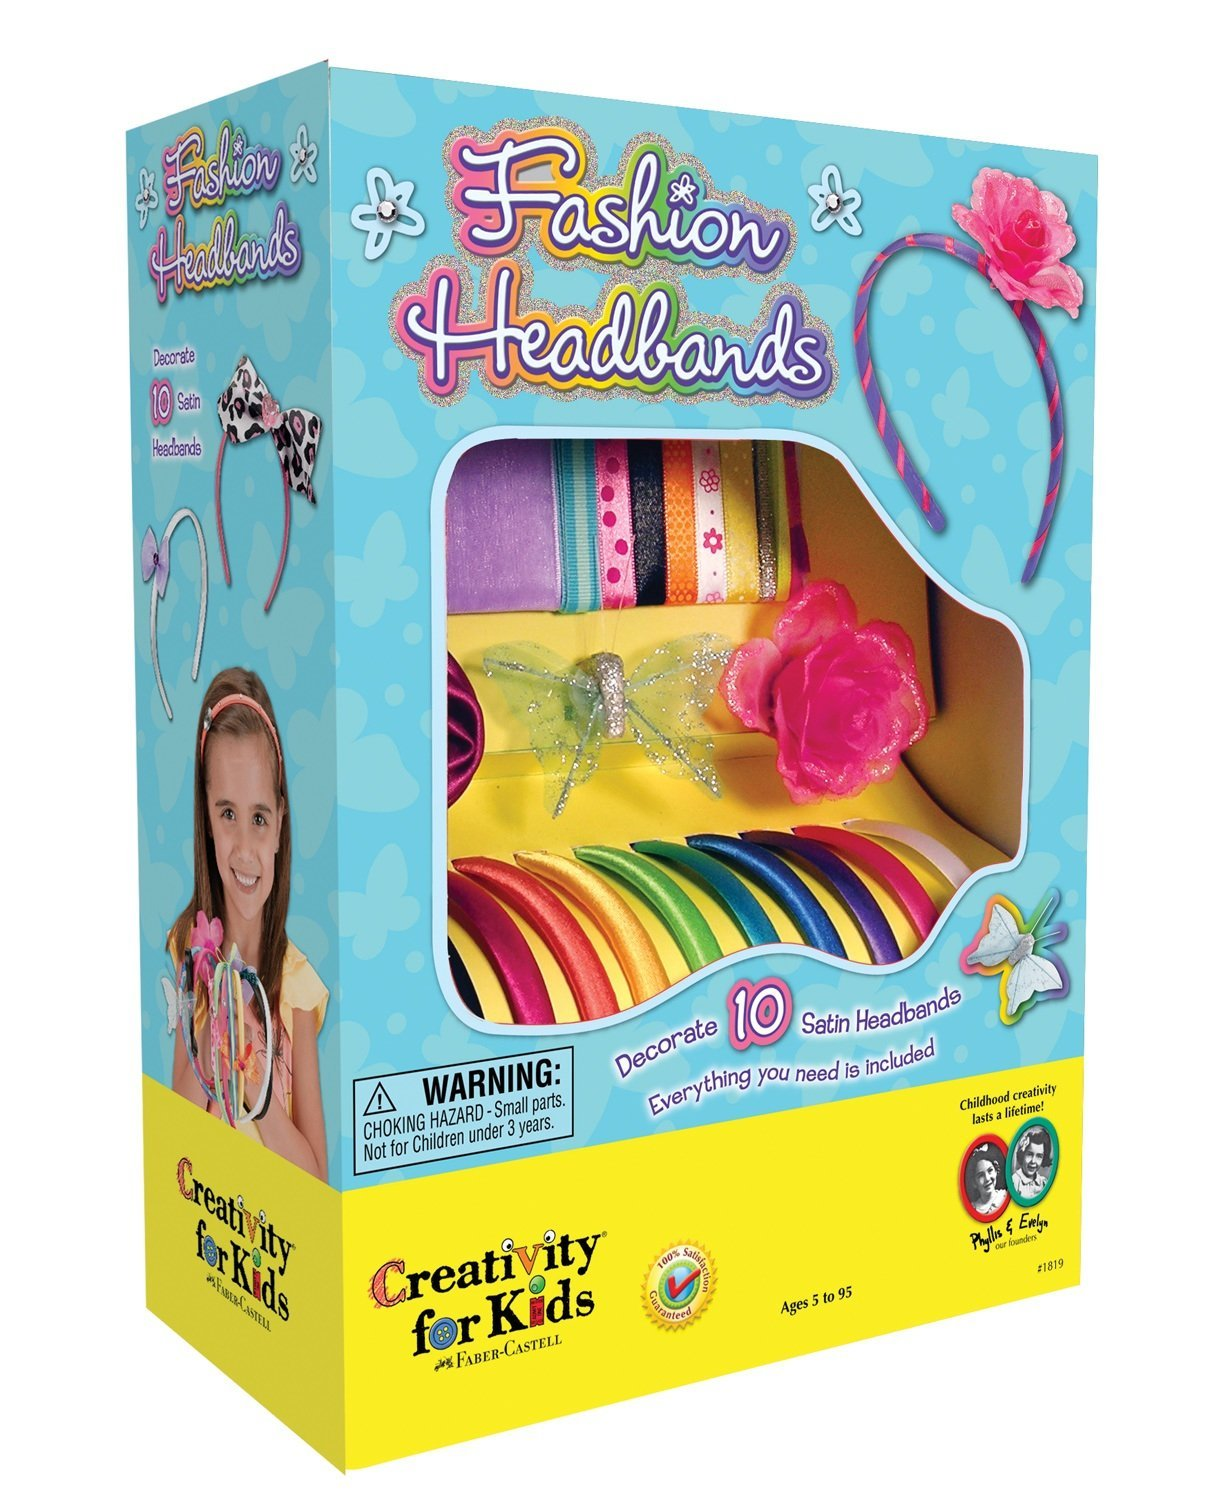 Best toys for a 6 year old girl in 2018 for Jewelry making kit for 4 year old